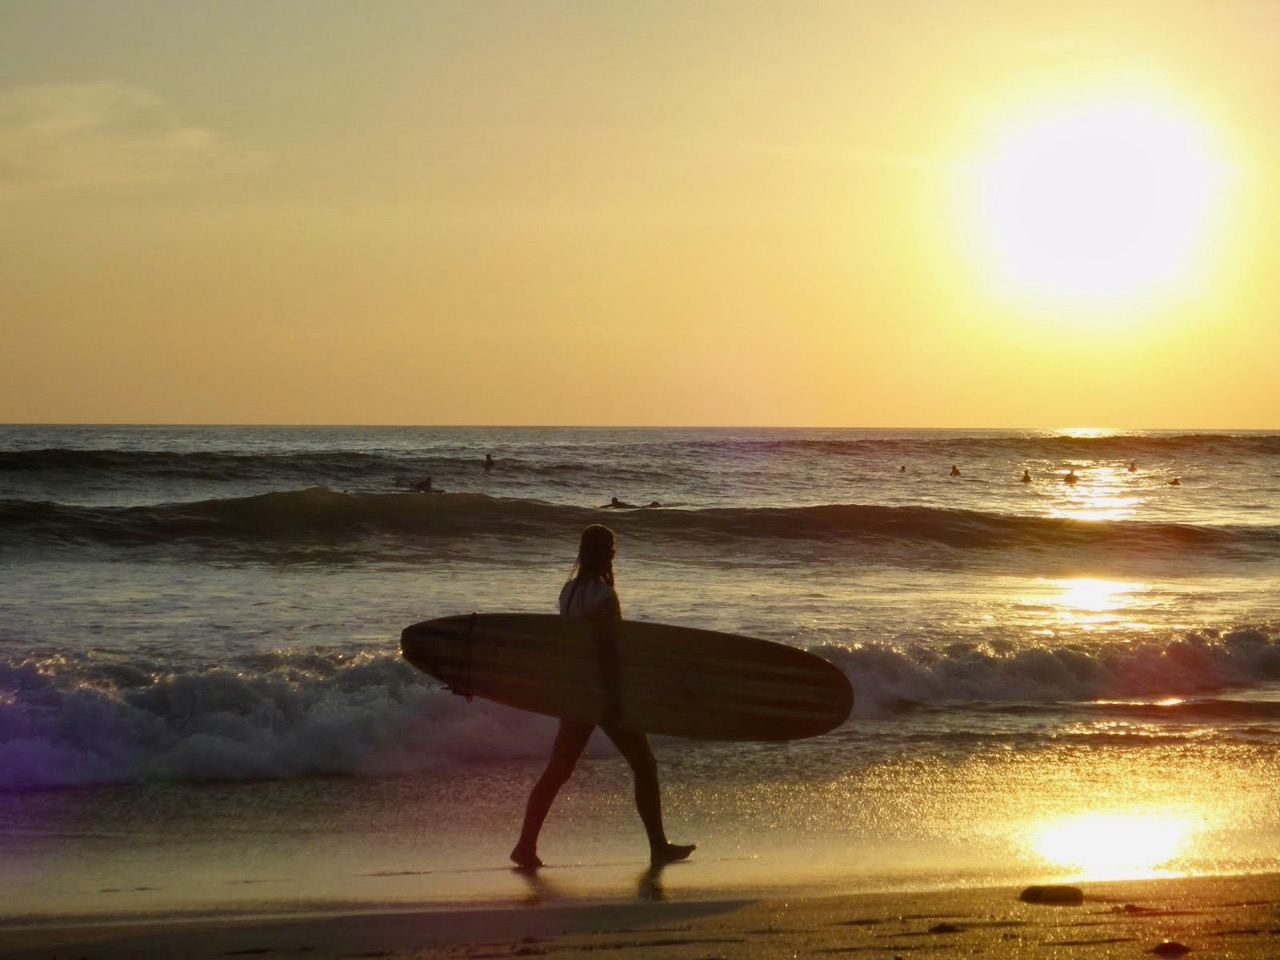 I'd like to get back on a surf board after my ACL surgery recovery